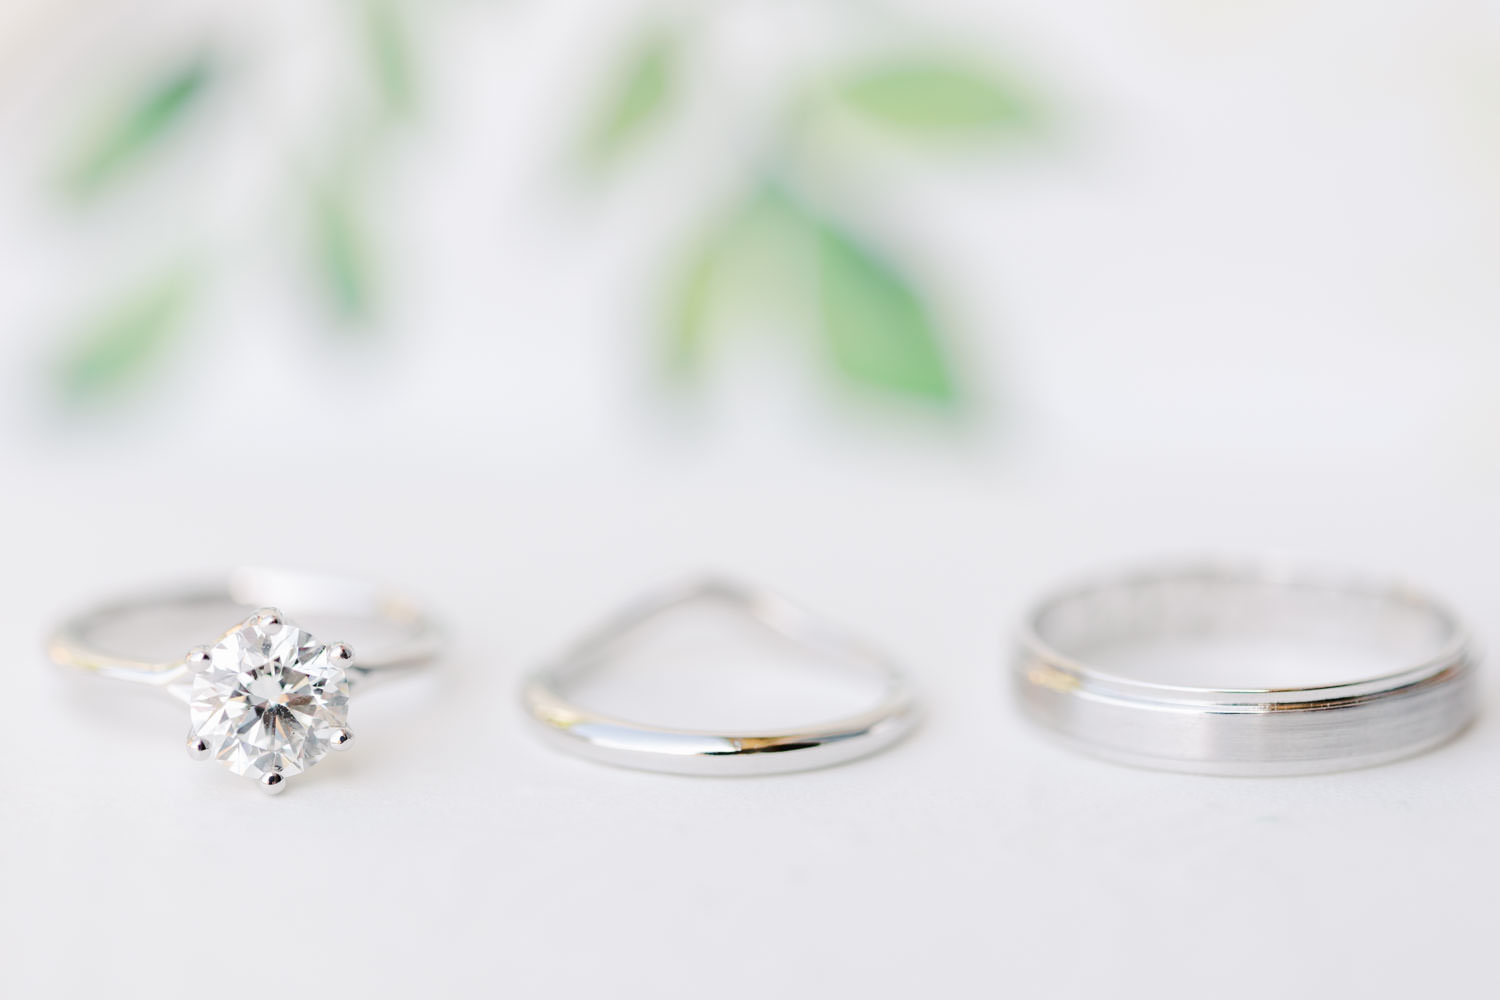 Platinum wedding band set with engagement ring featuring a solitaire diamond, Del Mar Country Club Wedding by Cavin Elizabeth Photography